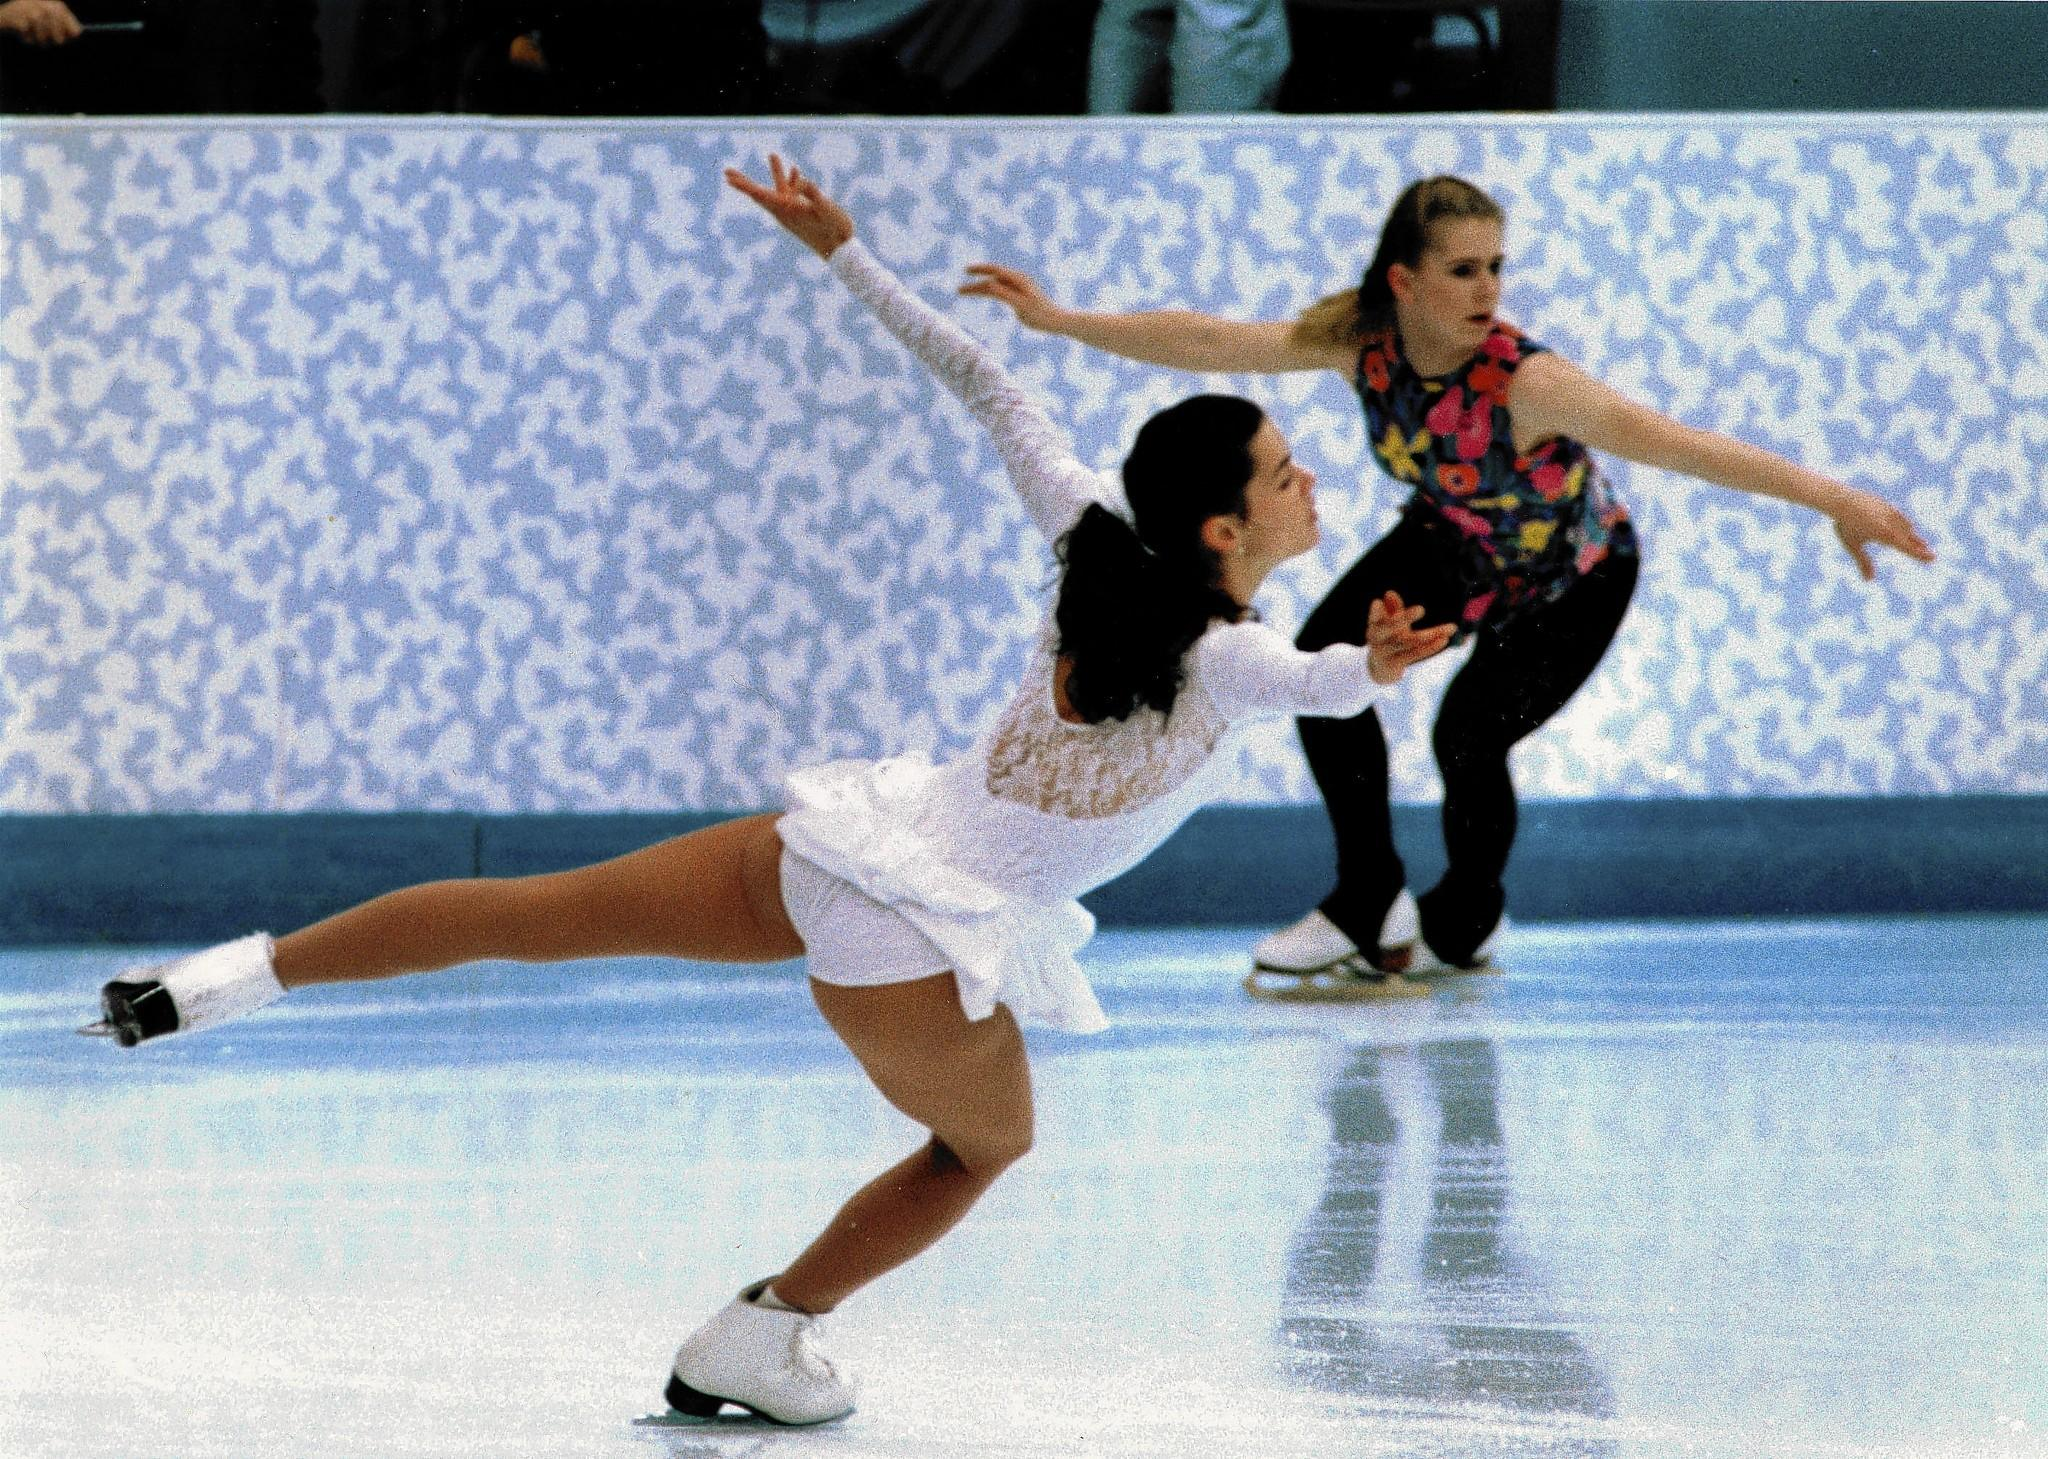 U.S. skaters Nancy Kerrigan, left, and Tonya Harding practice at the 1994 Lillehammer Olympics in Norway. Kerrigan went on to win the silver medal while Harding, who became infamous after her ex-husband and bodyguard plotted an attack on her rival, won mainly ridicule.